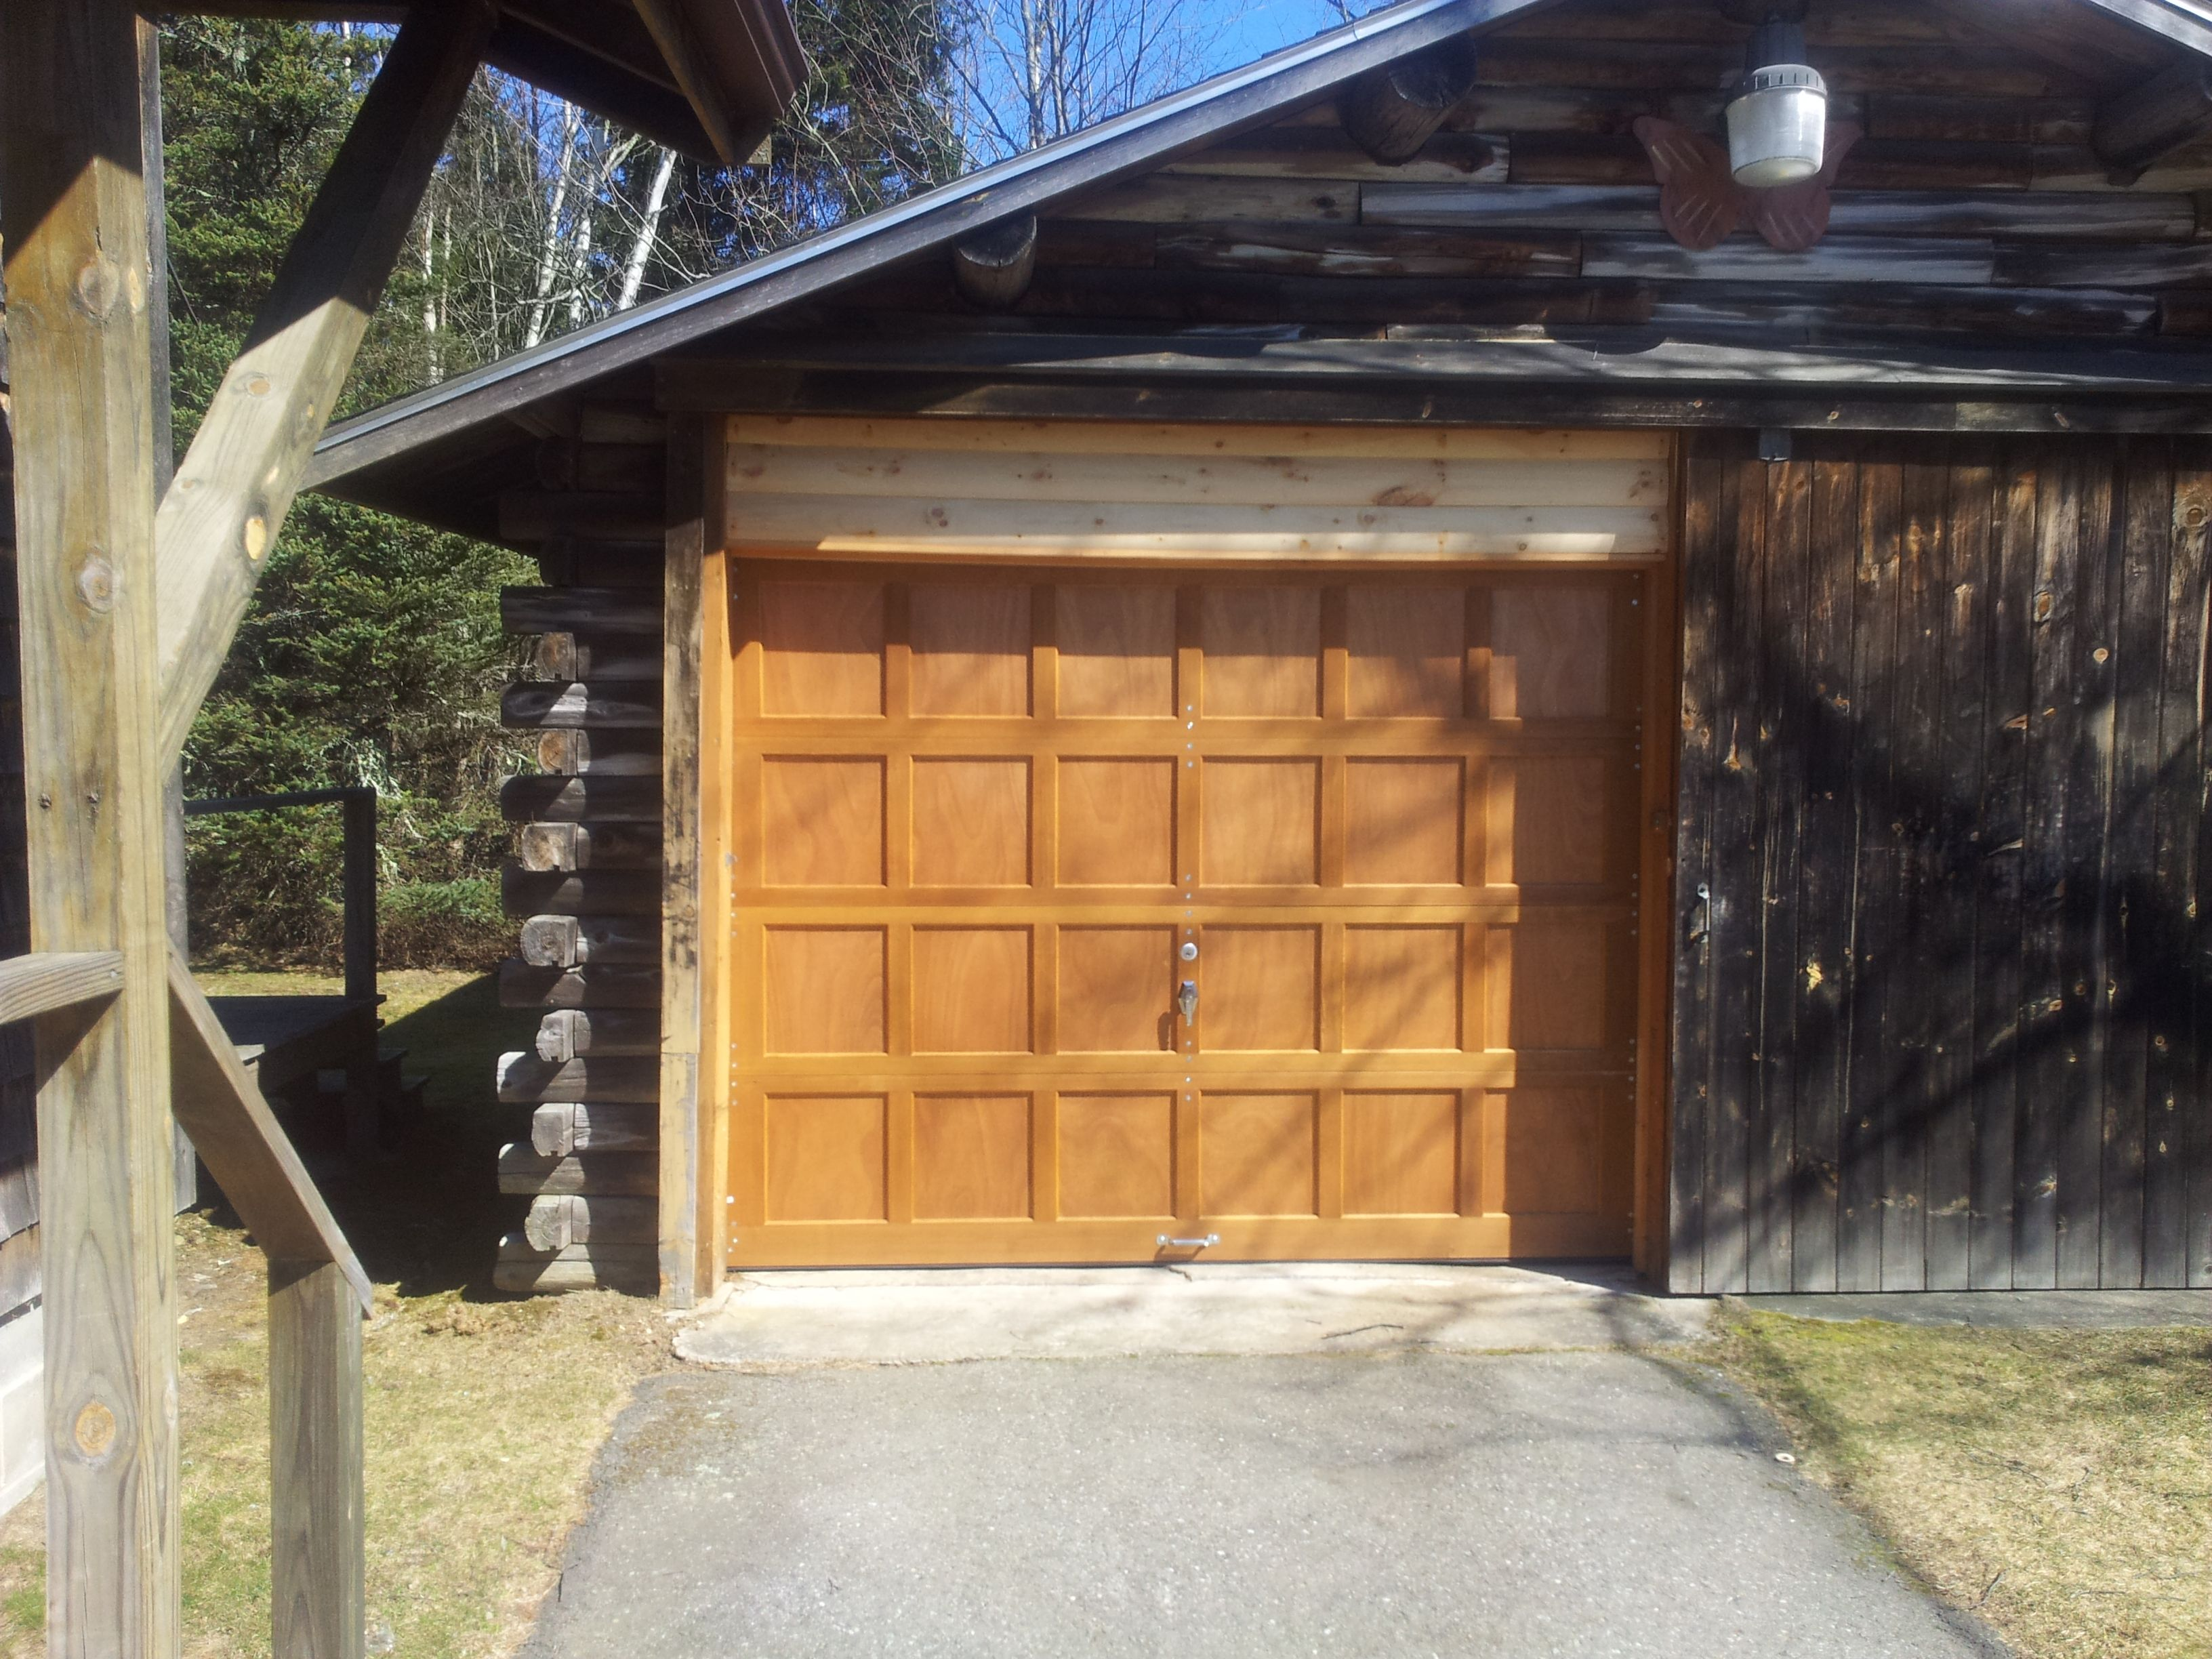 Mdl43 Stained With Golden Oak Garage Door Styles Residential Garage Doors Wood Garage Doors